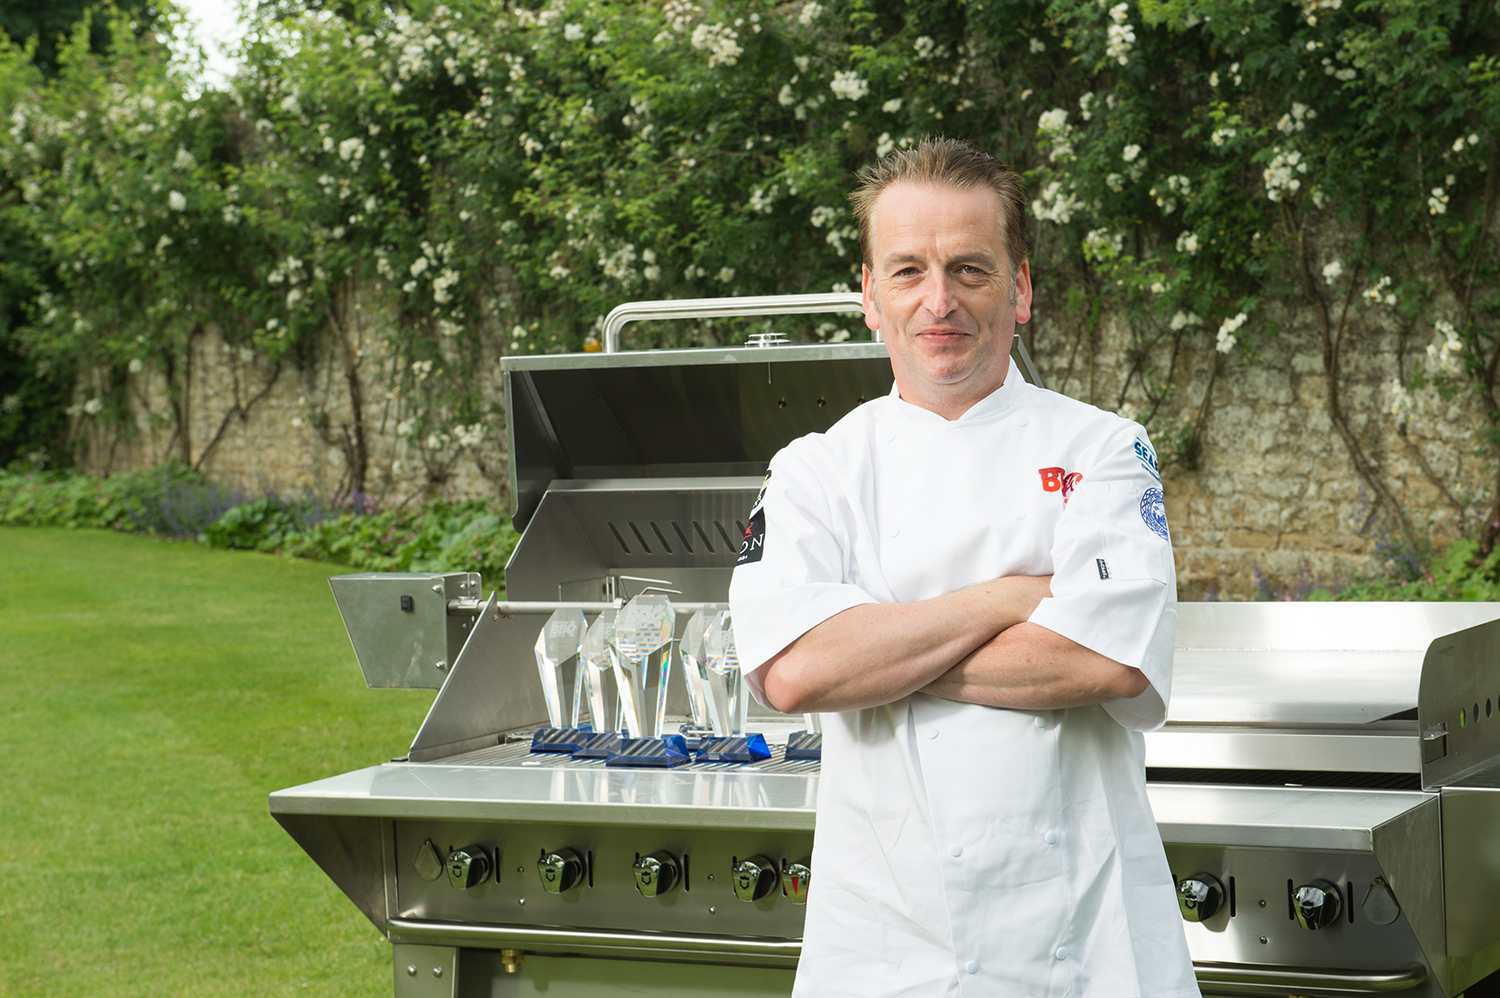 World Barbecue Champion Ben Bartlett recommends using a gas barbecue, and says using wood really adds to the flavour of your dishes